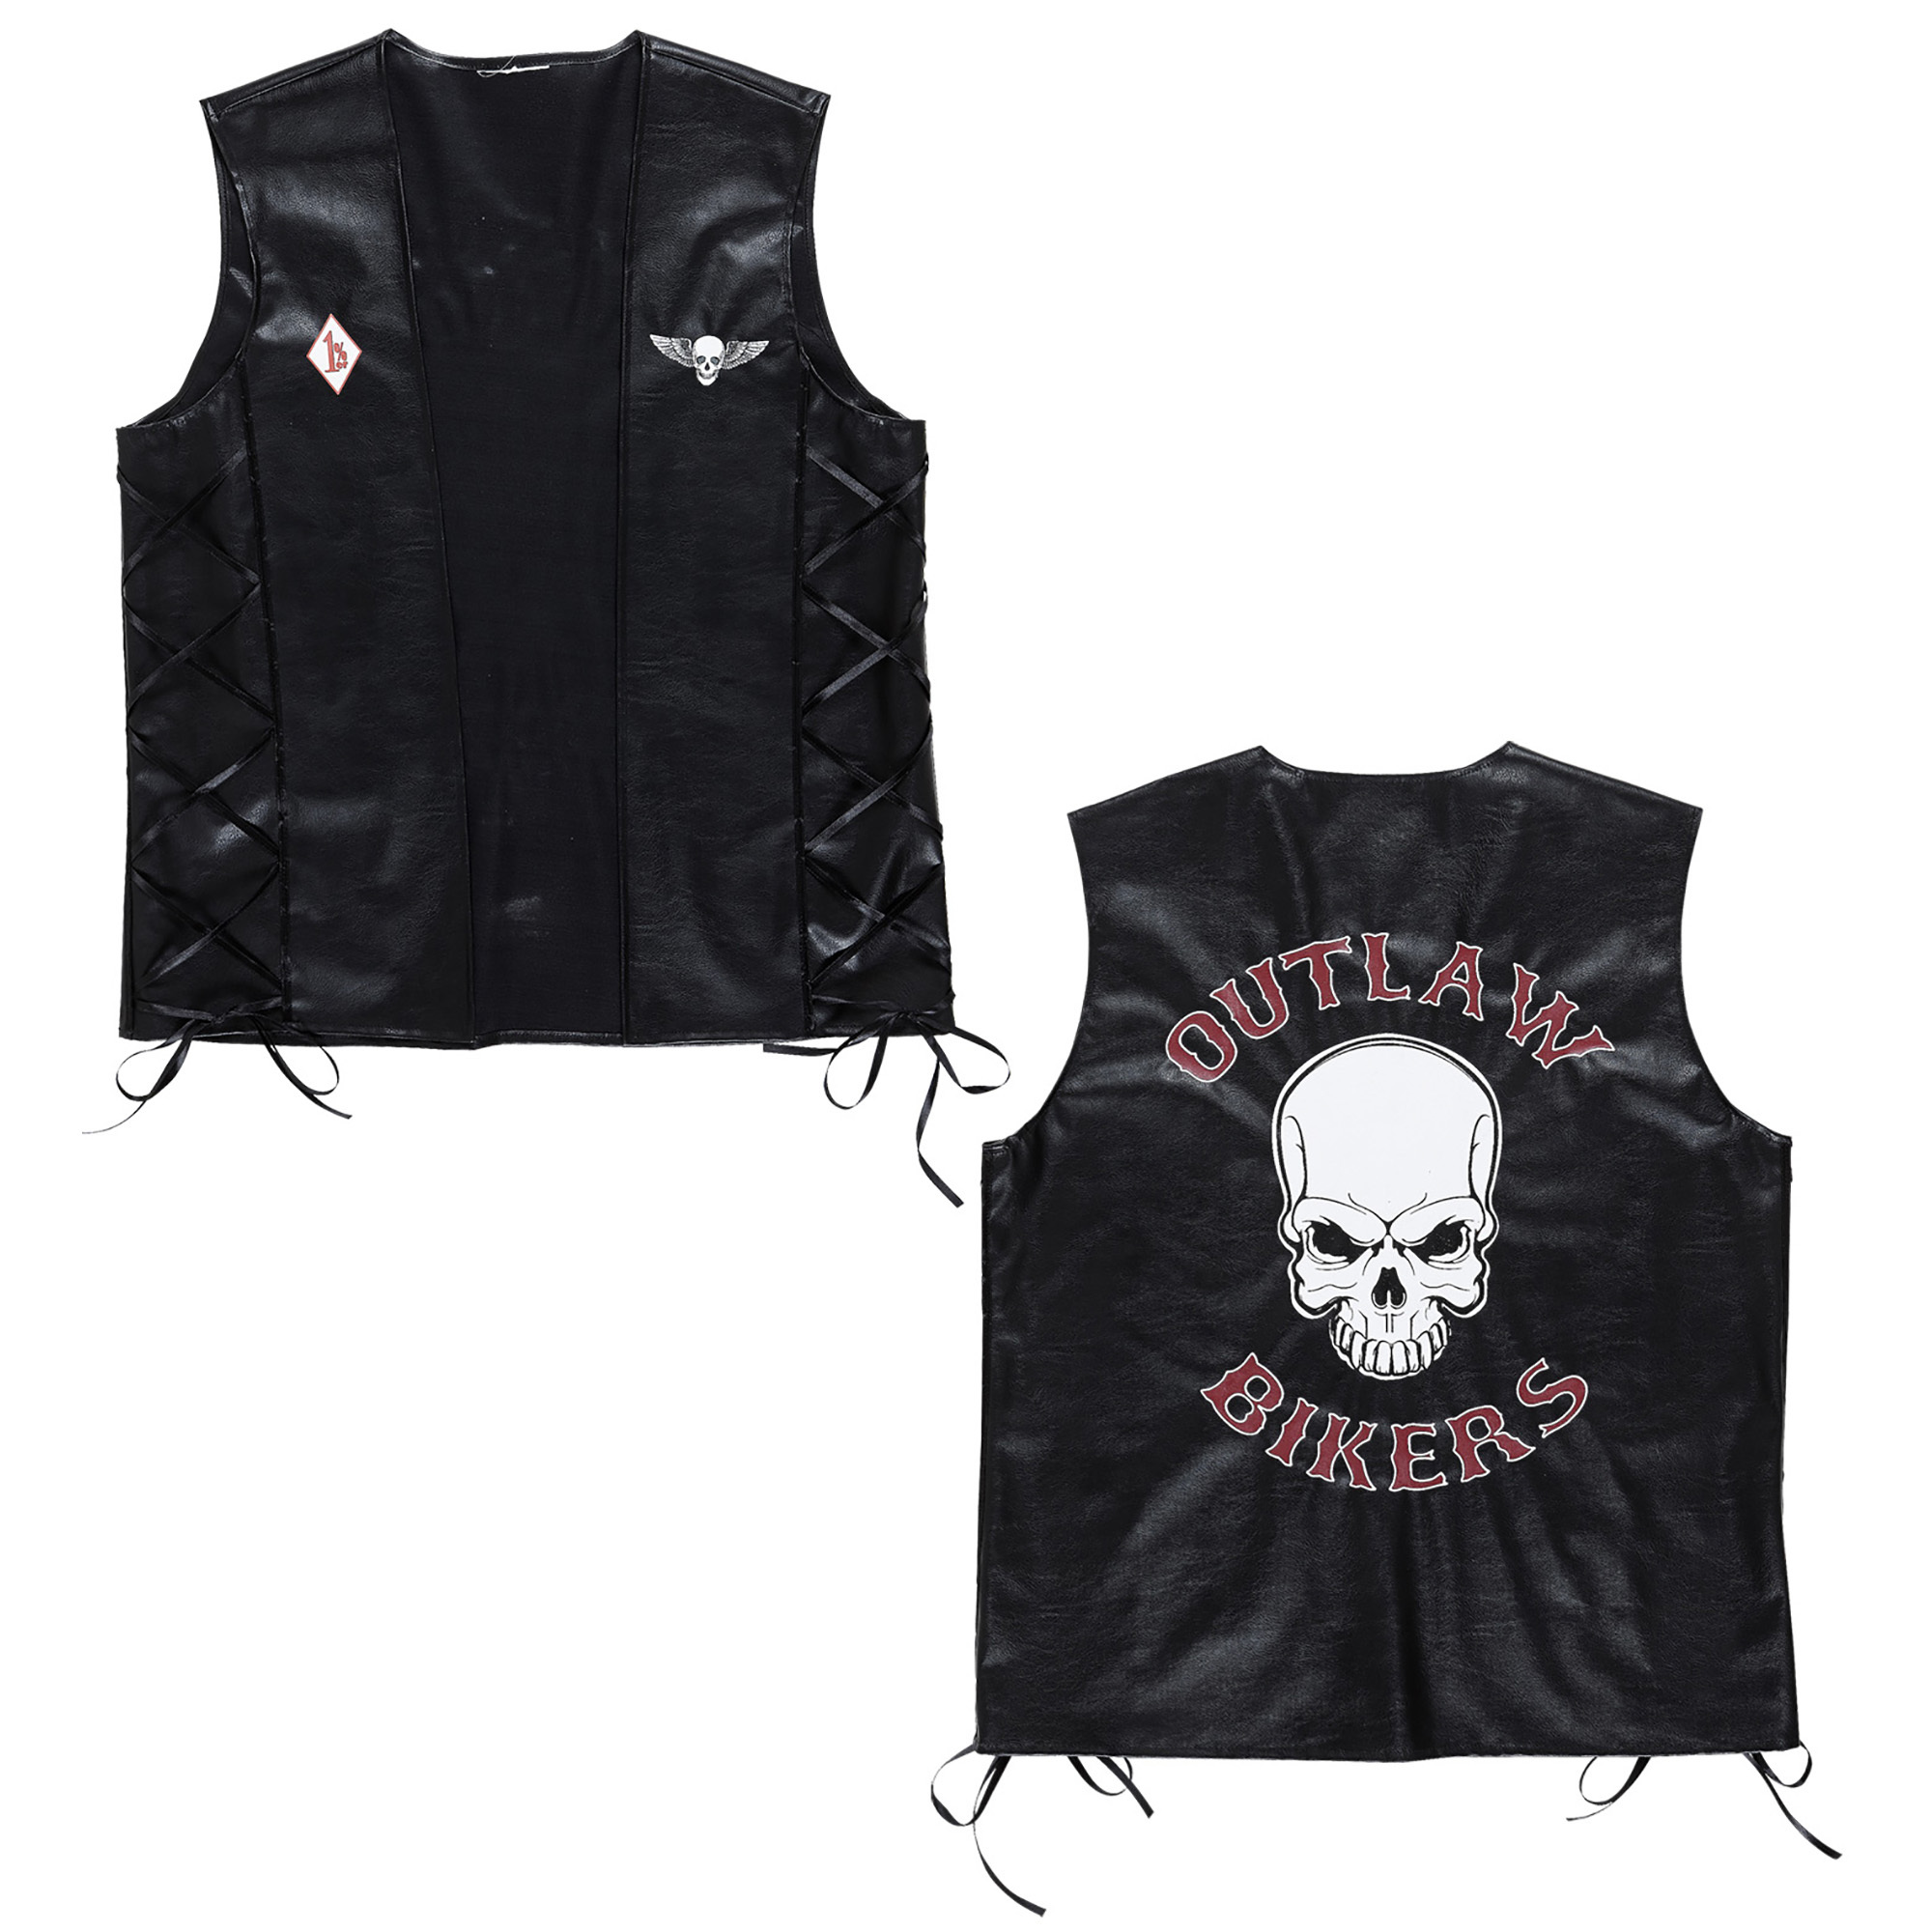 lederlook vest outlaw bikers